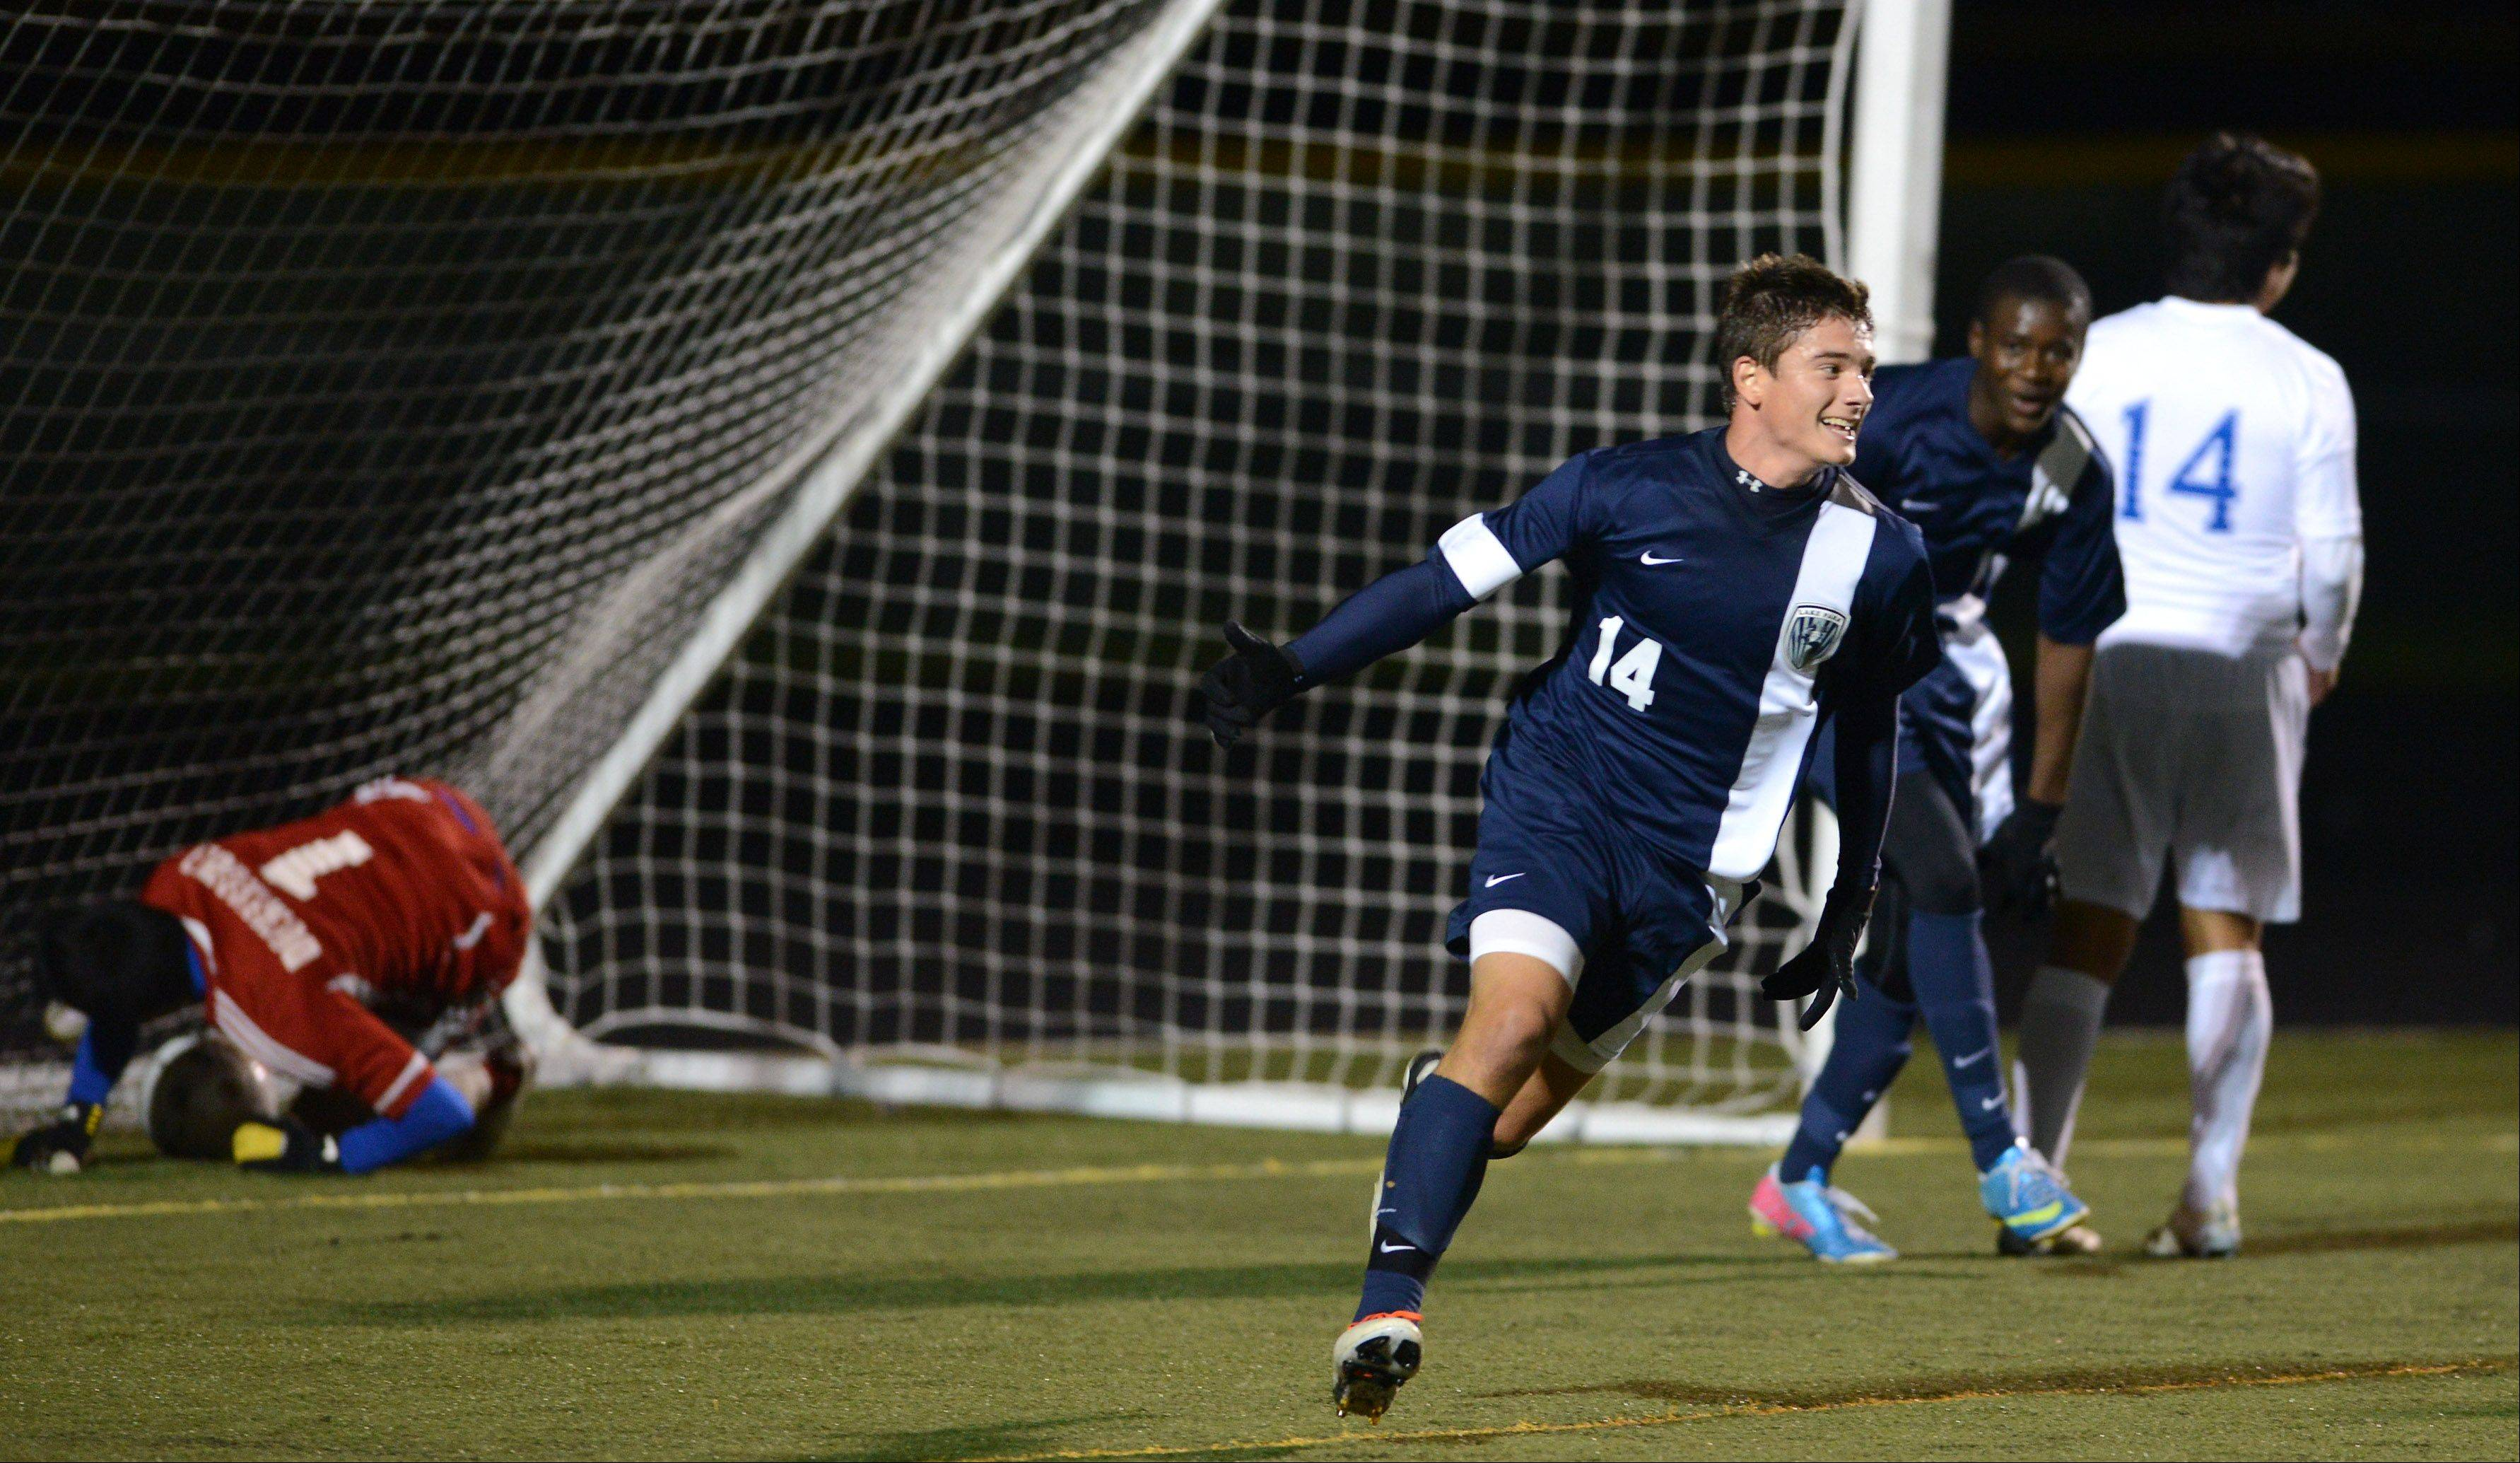 Lake Park�s Giovanni Ciaccio celebrates after scoring what proved to be the game-winning goal against Larkin during Tuesday�s supersectional in Streamwood.